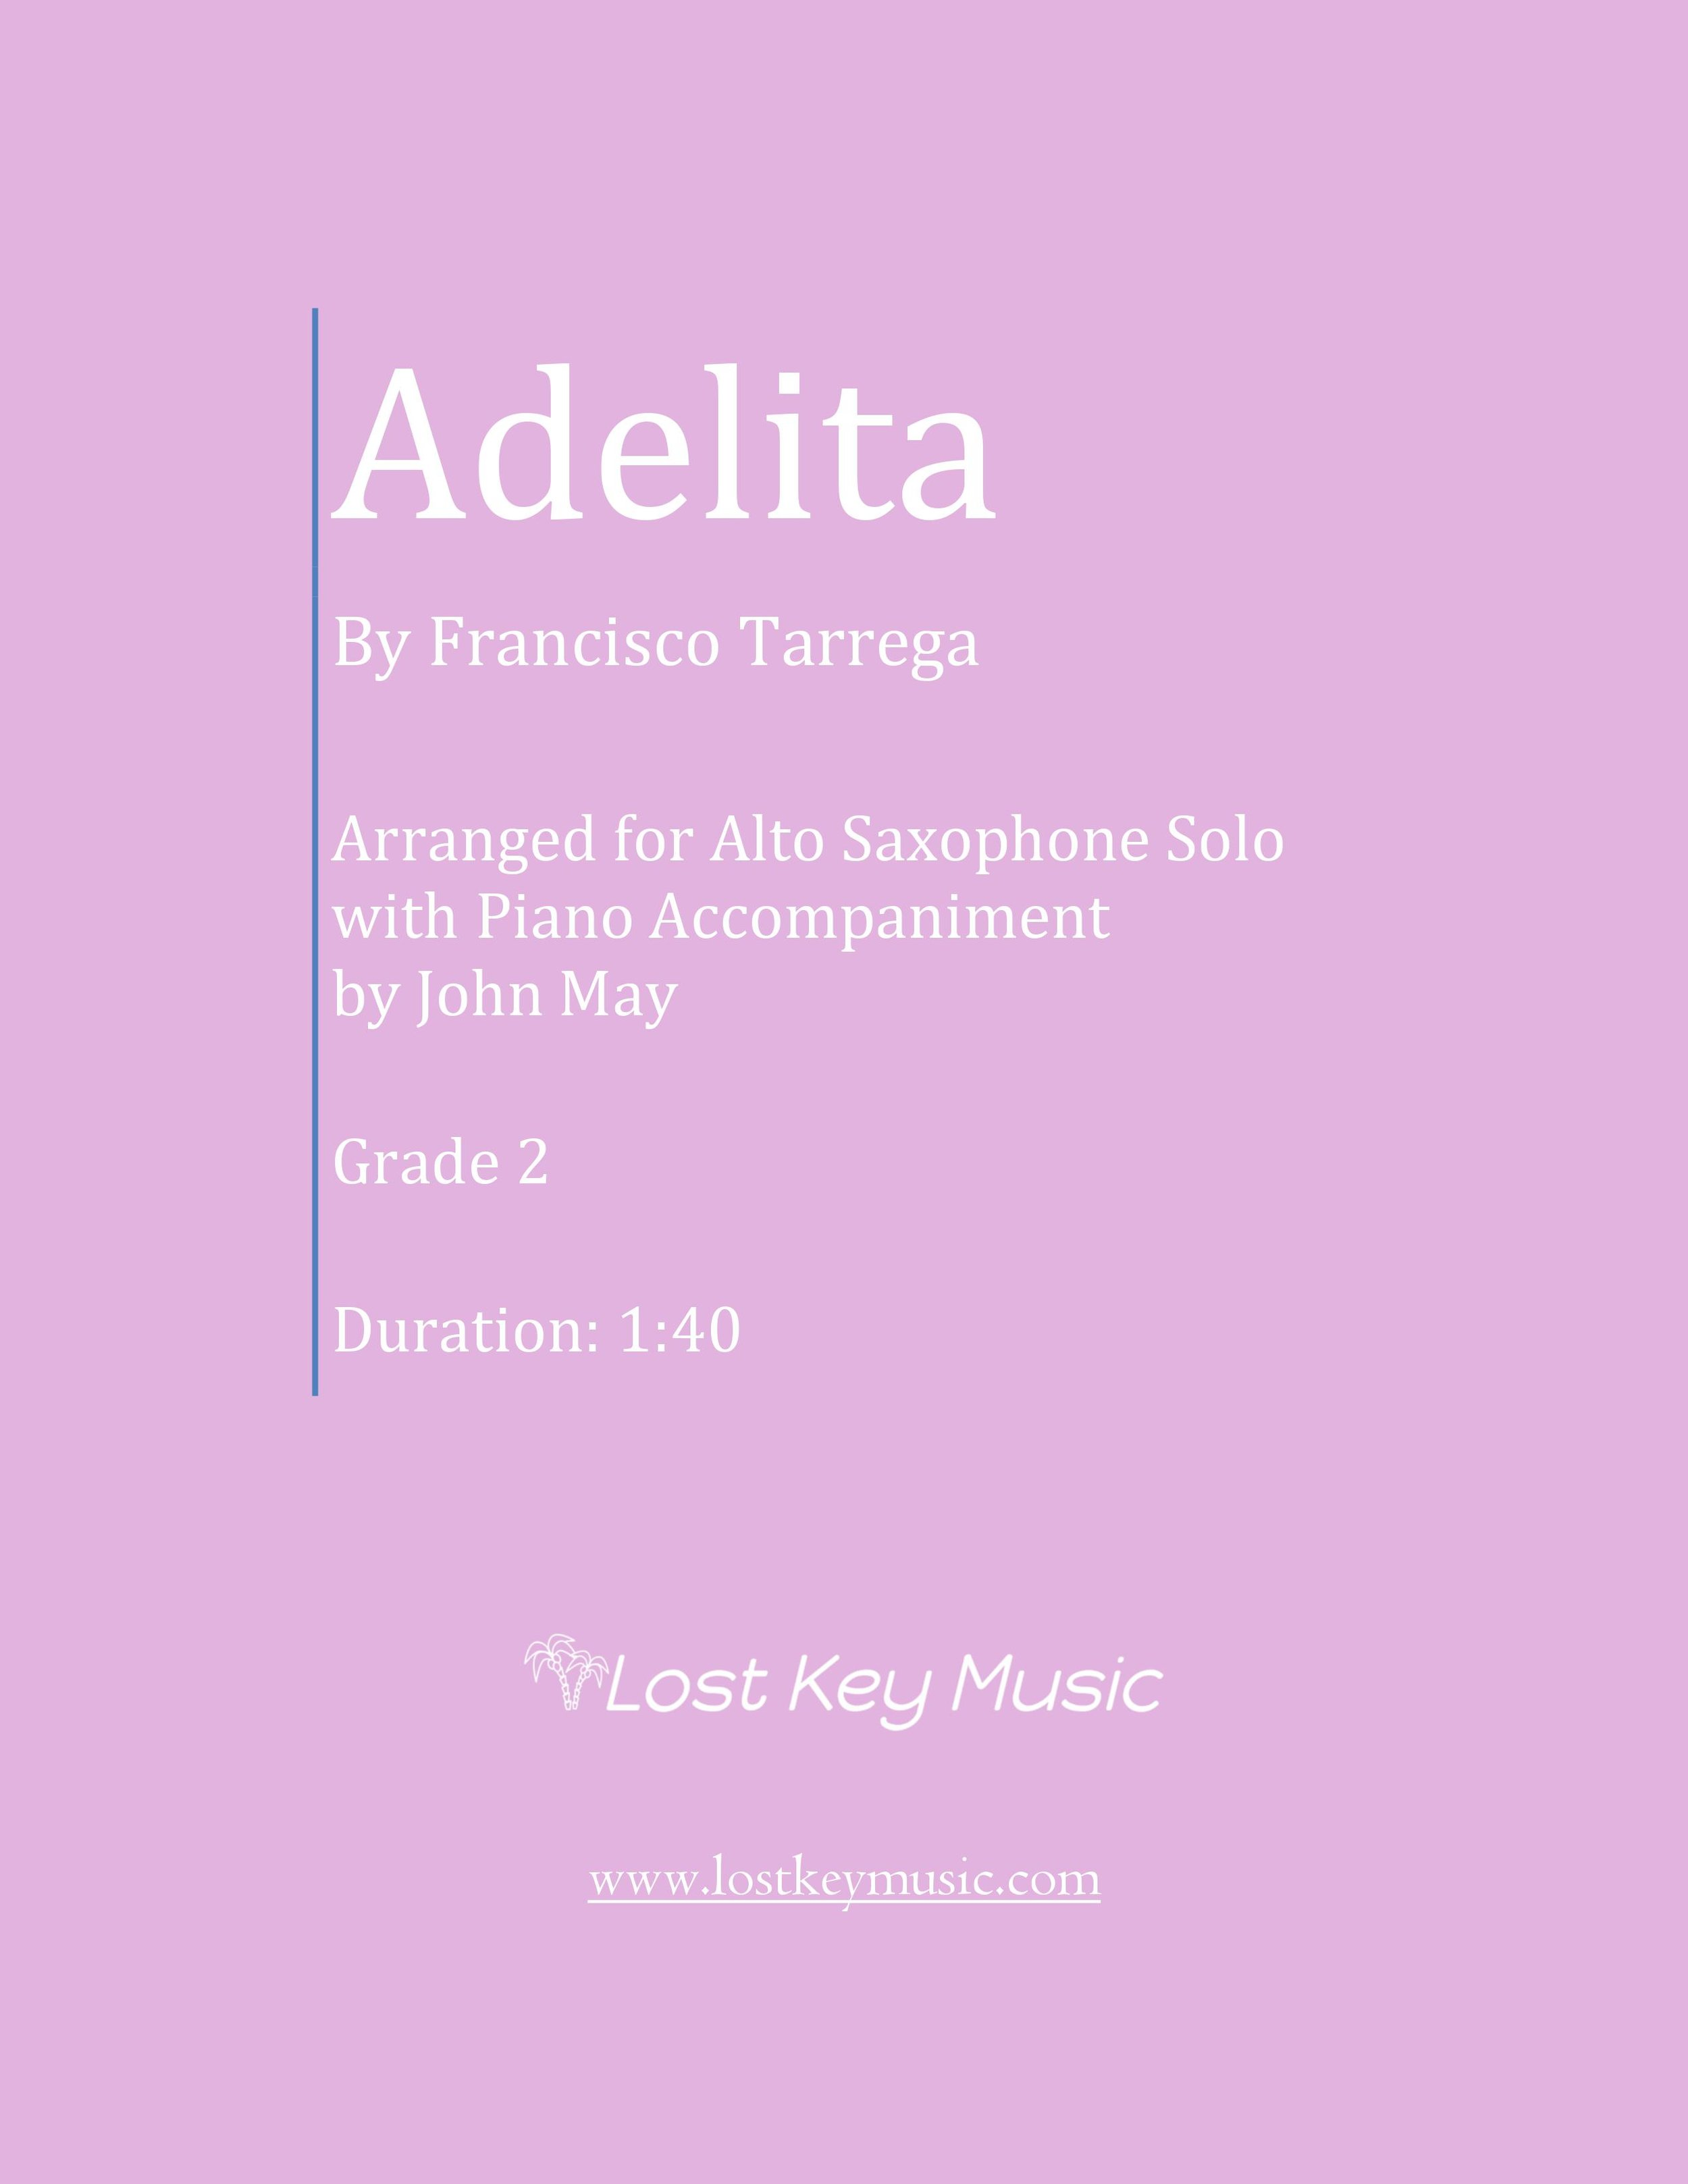 Adelita-alto saxophone with piano accompaniment-cover photo.jpg